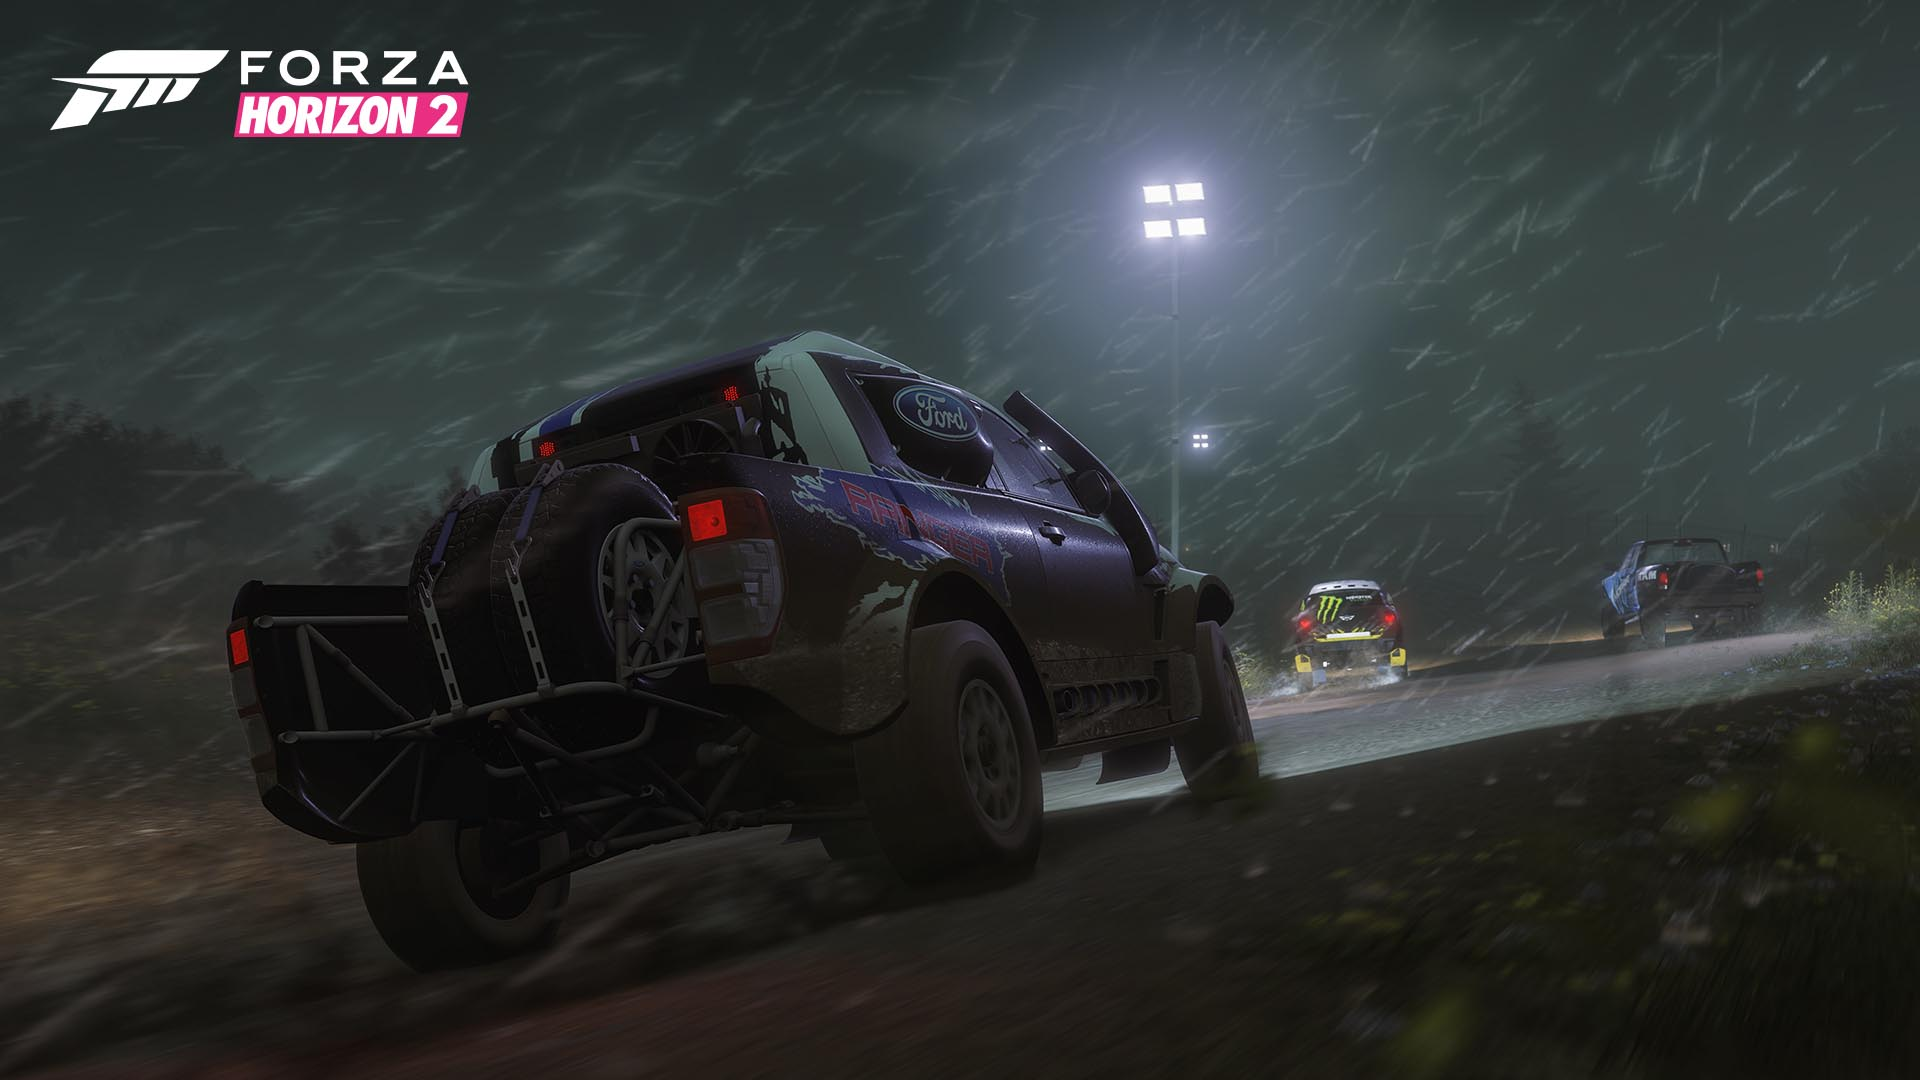 It's no secret that we love <i>Forza Horizon 2</i>. What's not to love about bombing around the sun-drenched European countryside in a supercar (or Transit van)? Need something more refreshing? The Storm Island DLC adds a new location with a focus on off-road racing and adverse weather (think fog and torrential downpours). | <b>For:</b> Xbox One, Xbox 360 (core game only)